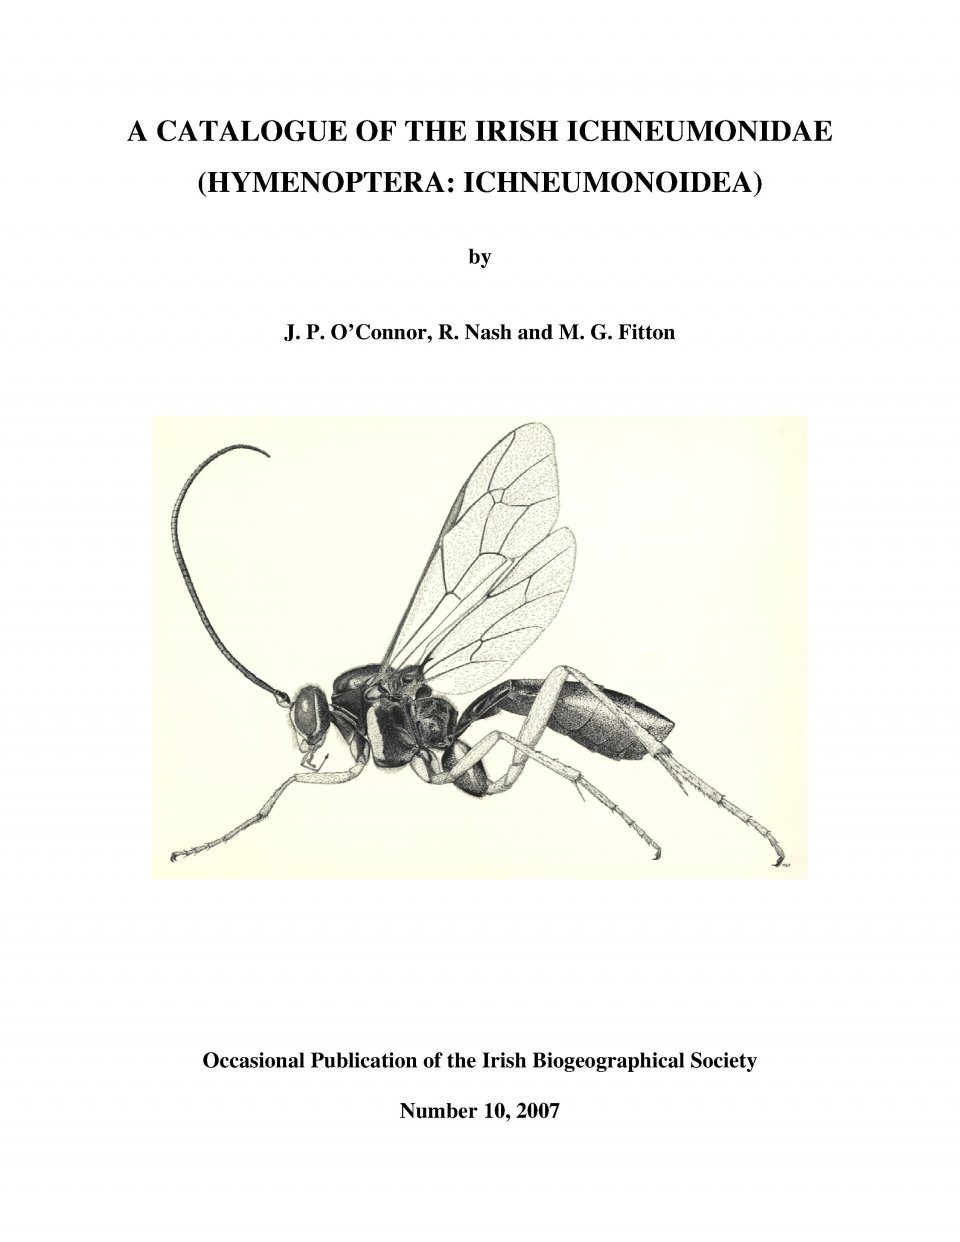 A Catalogue of the Irish Ichneumonidae (Hymenoptera: Ichneumonidae)